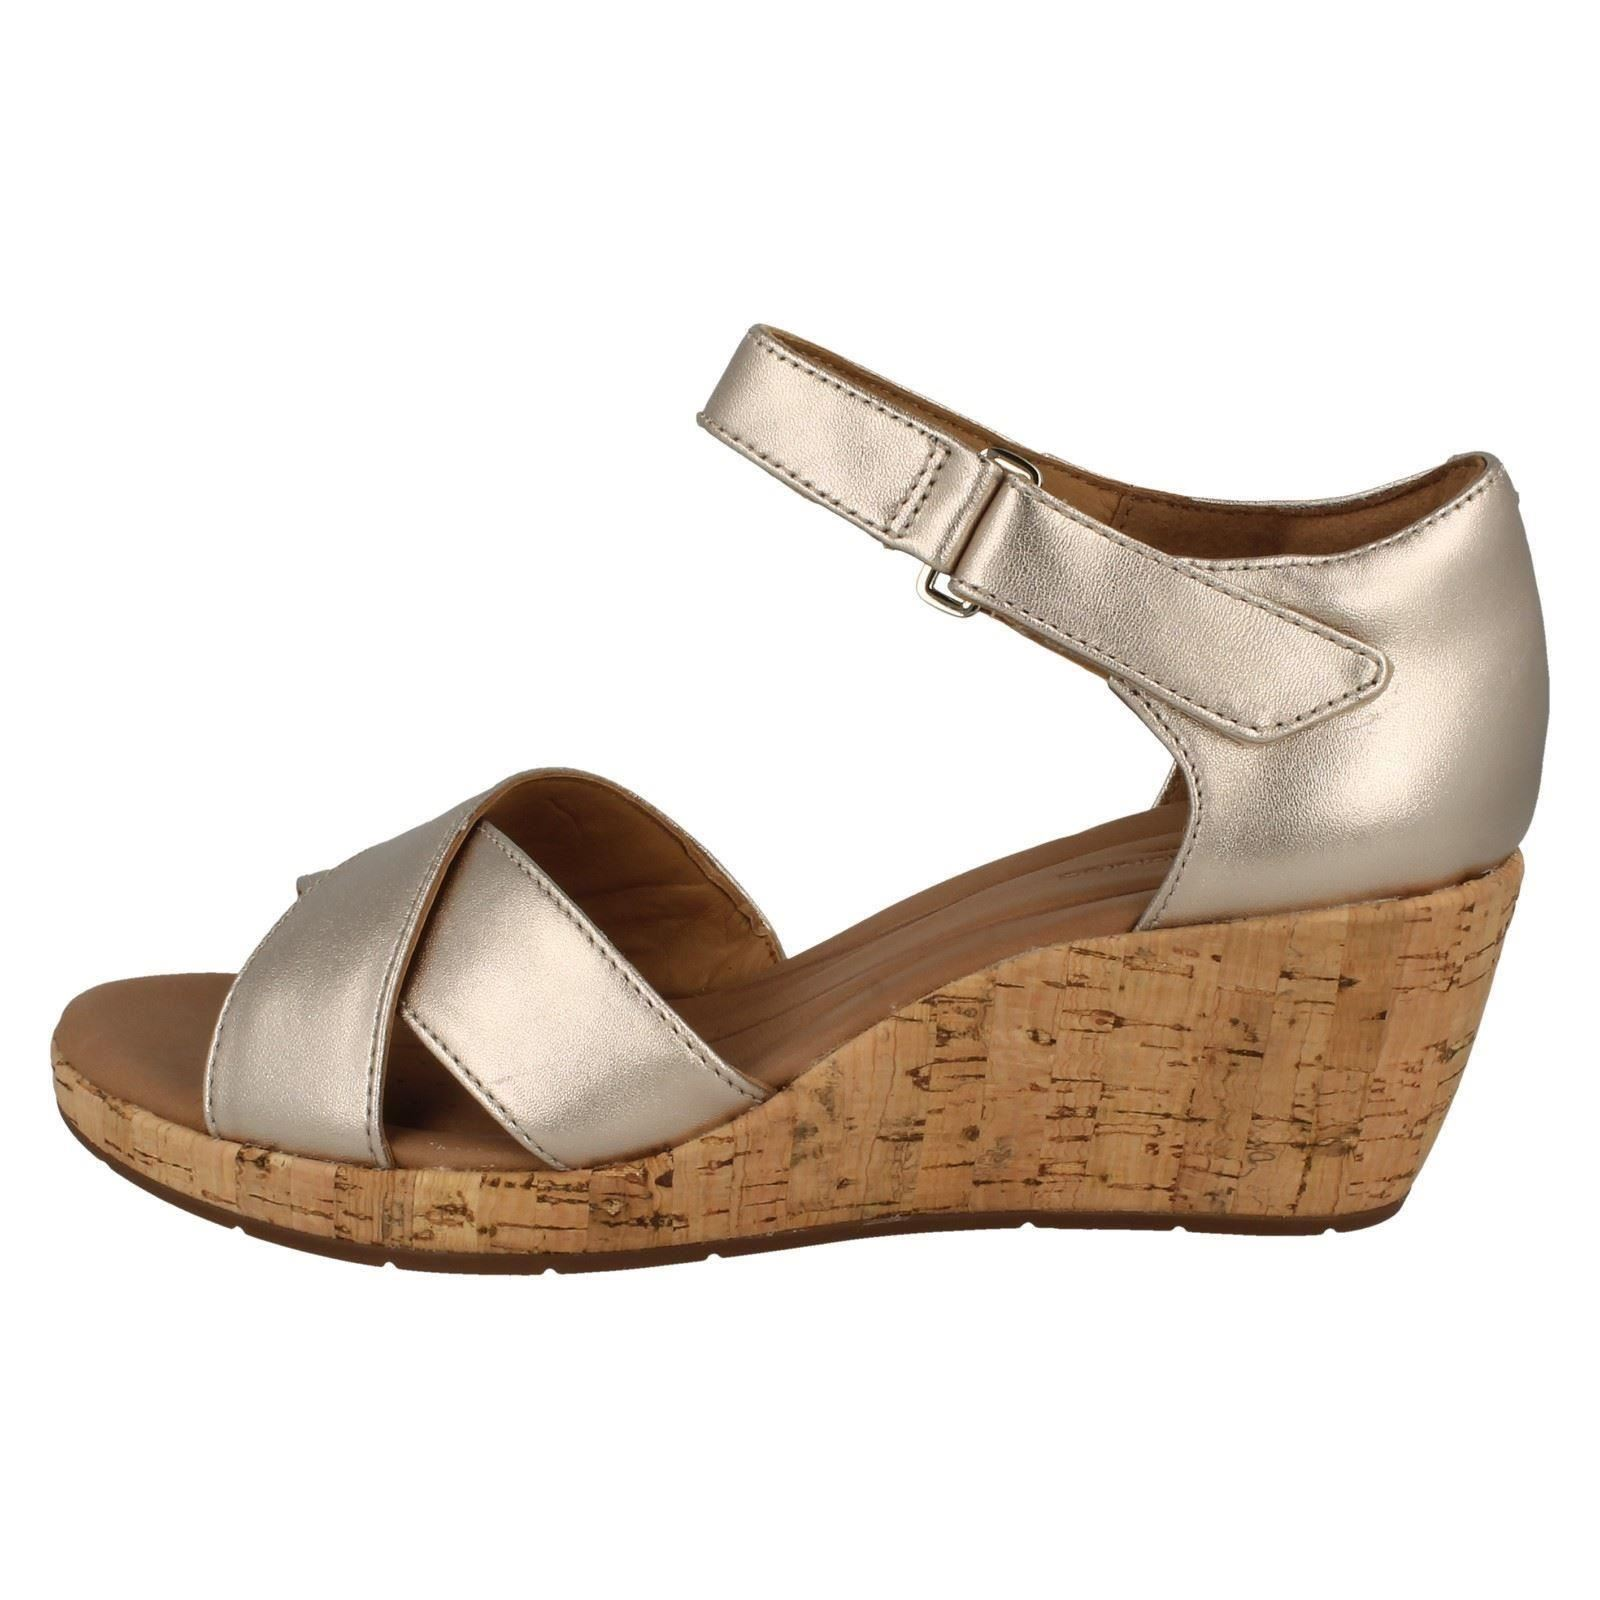 b21aa8e911f Ladies-Clarks-Wedge-Heeled-Sandals-Un-Plaza-Cross thumbnail